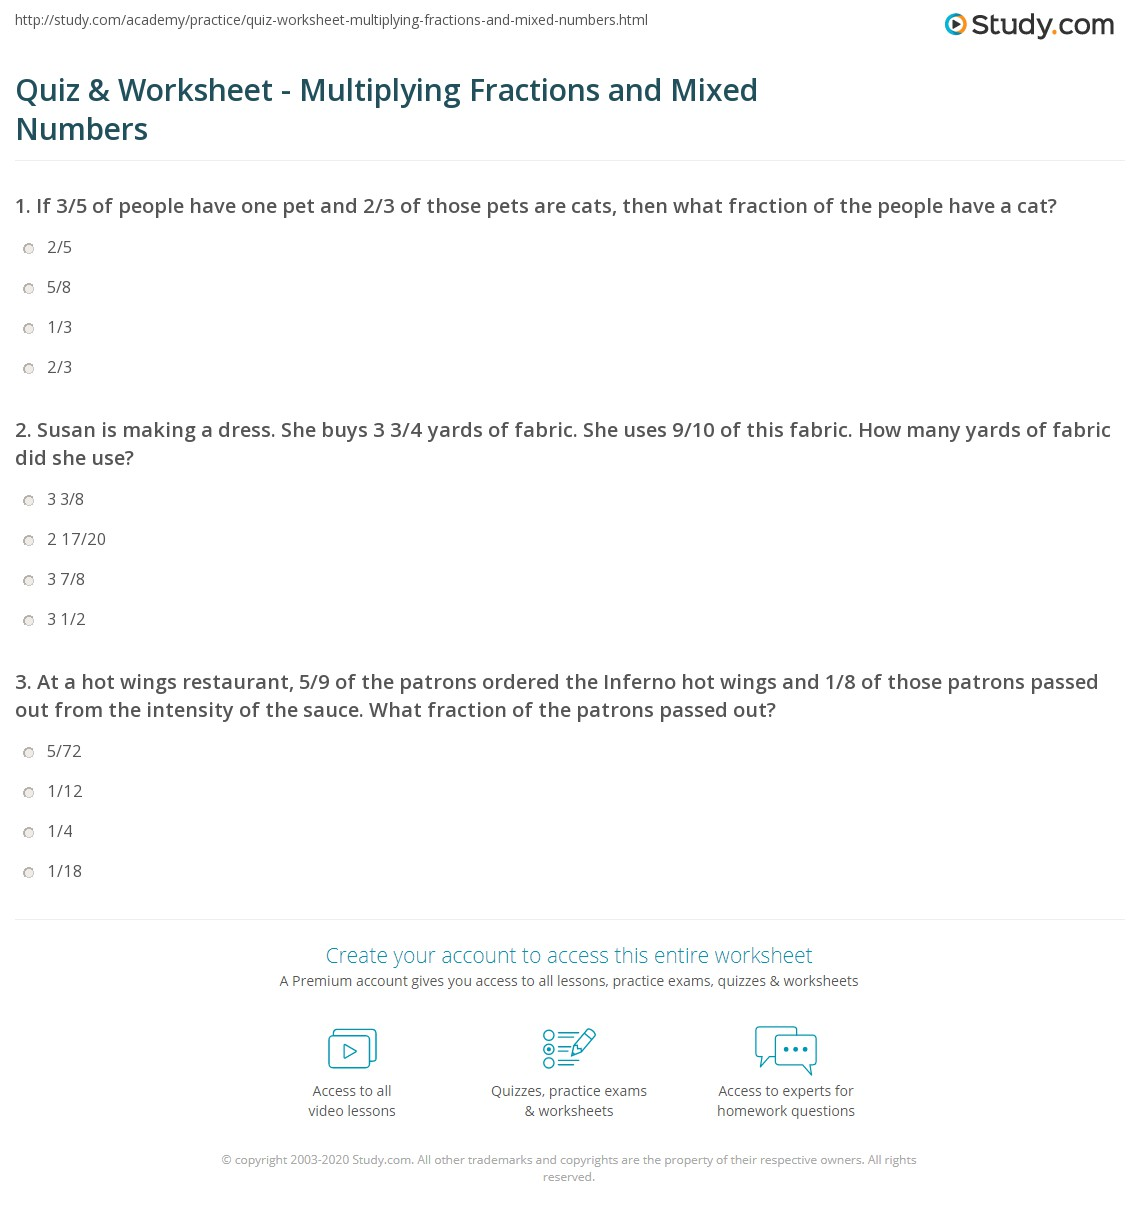 Worksheet Multiplying Mixed Numbers Worksheets Grass